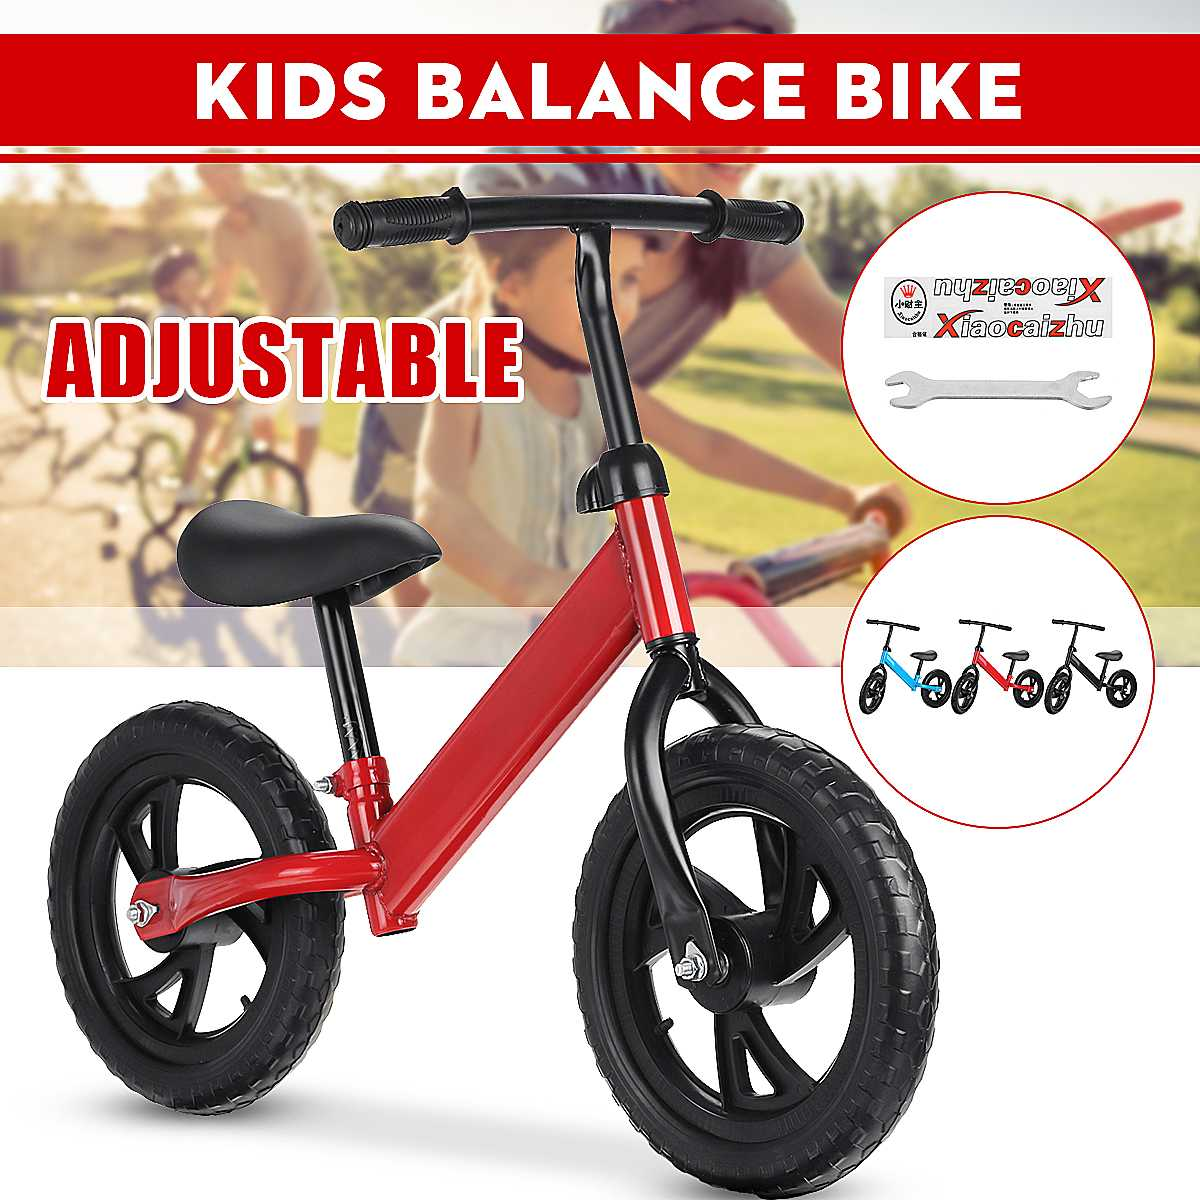 12 Inch Baby Balance Bike Walker Kids Ride On Toy For 2-6 Years Old Children For Learning Walk Two Wheel Scooter No Foot Pedal